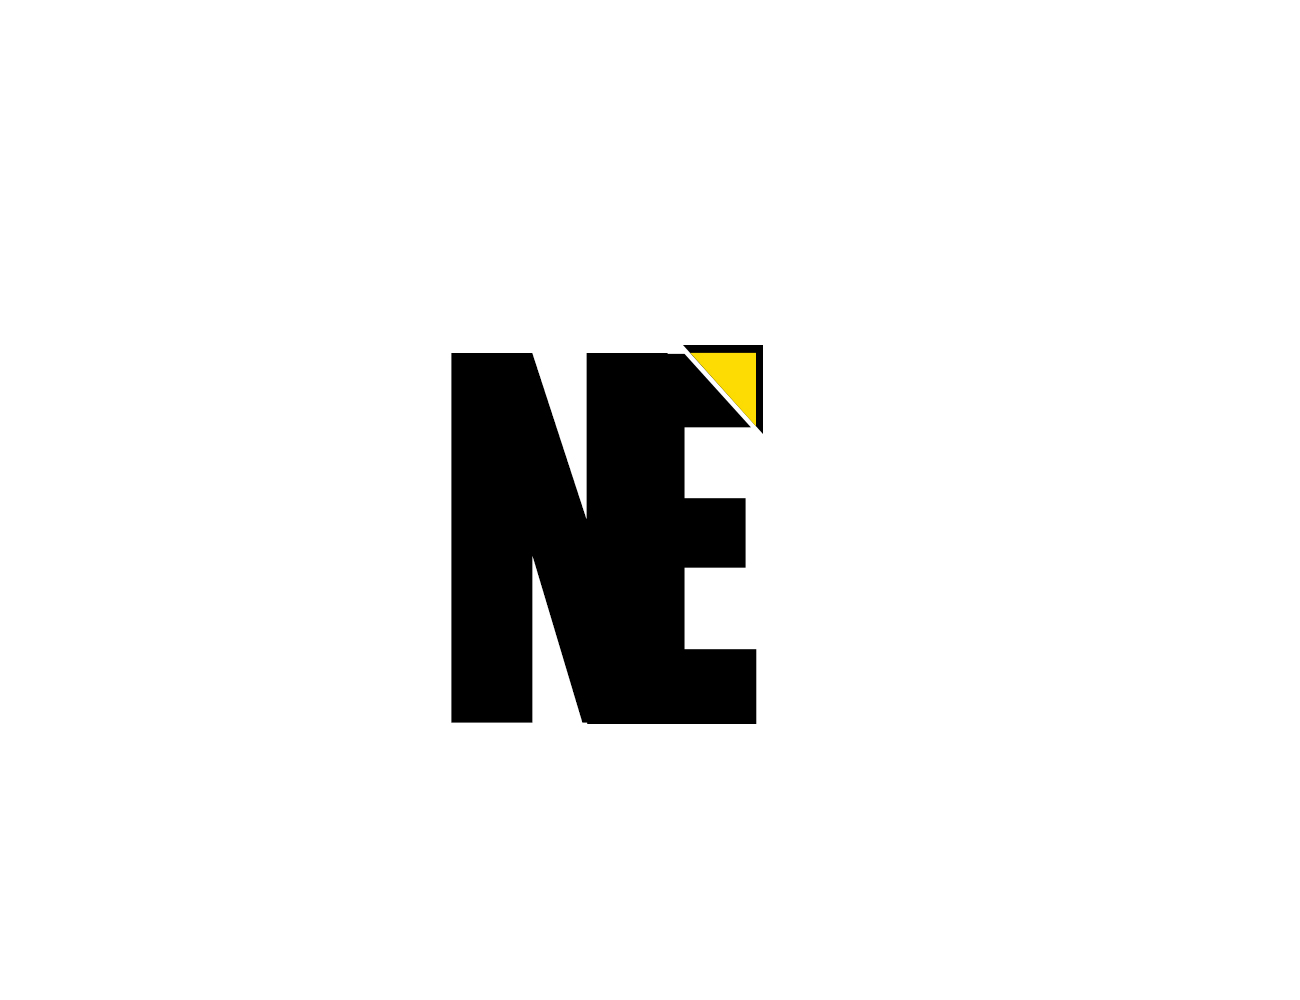 Logo Design by fireacefist - Entry No. 53 in the Logo Design Contest Imaginative Logo Design for The Near East Equipment Co..